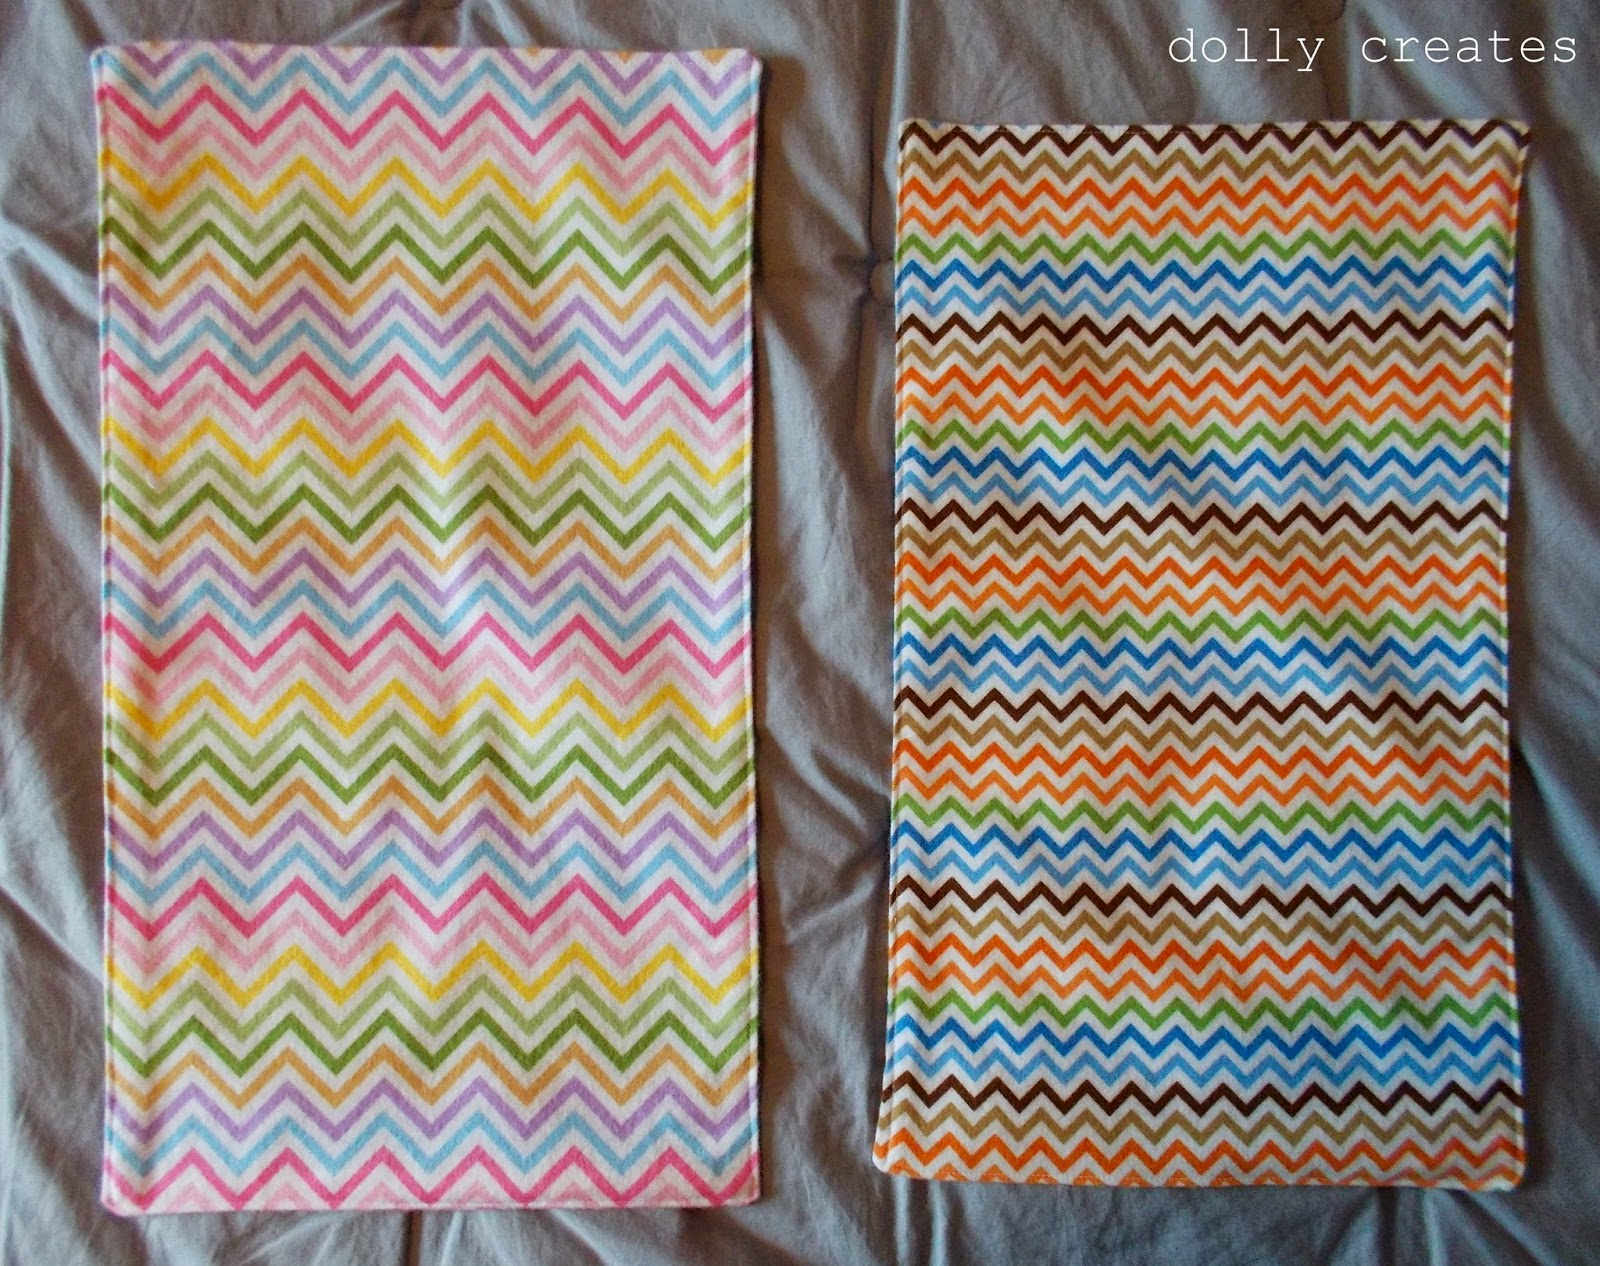 Diy Fat Quarter Projects Dolly Creates Diy Baby Gift Set